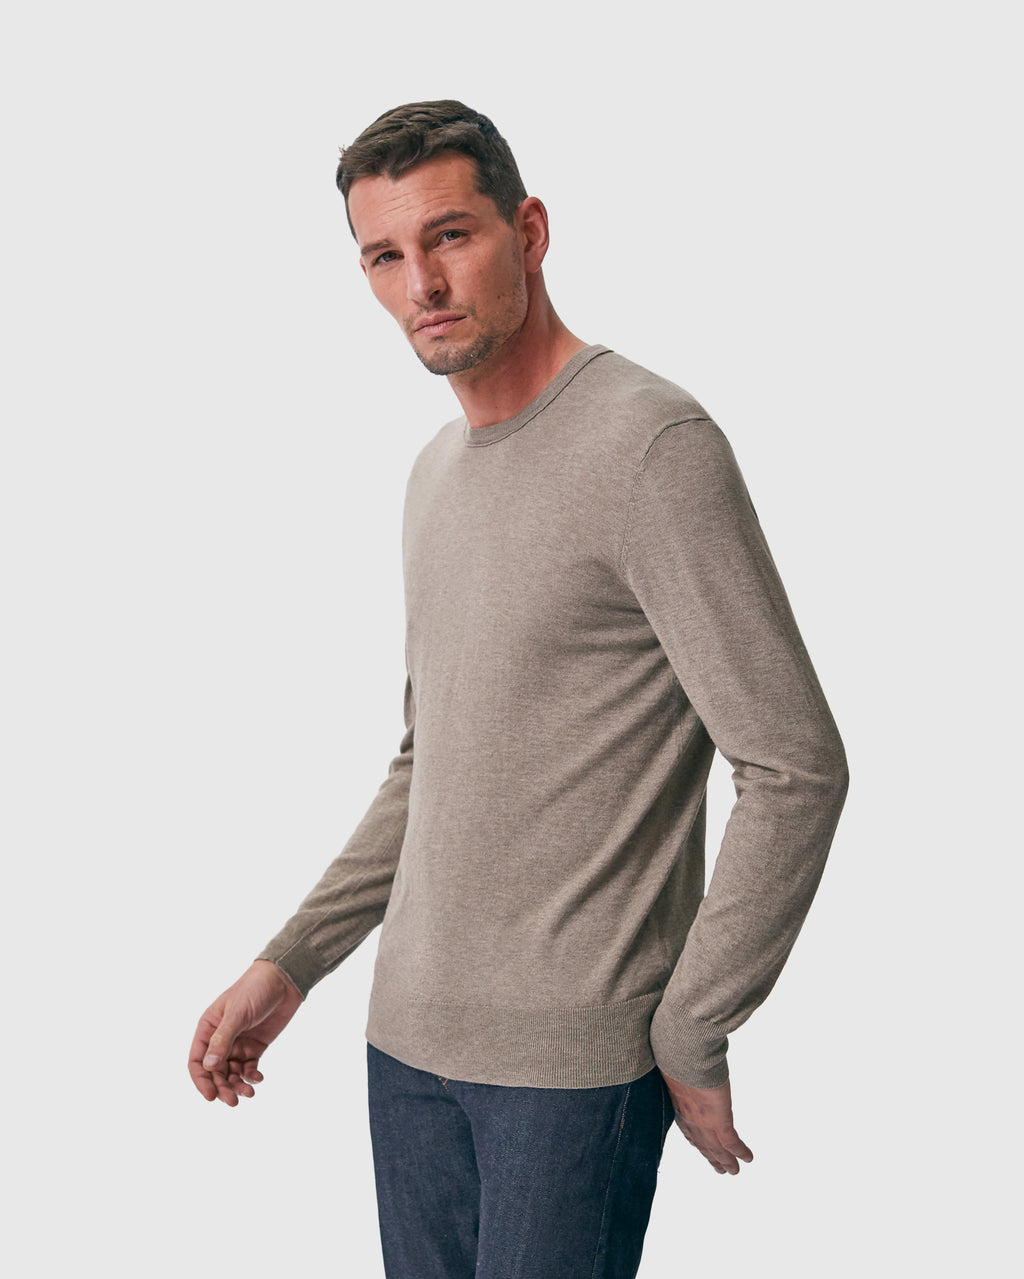 The Lesh Sweater in Beige